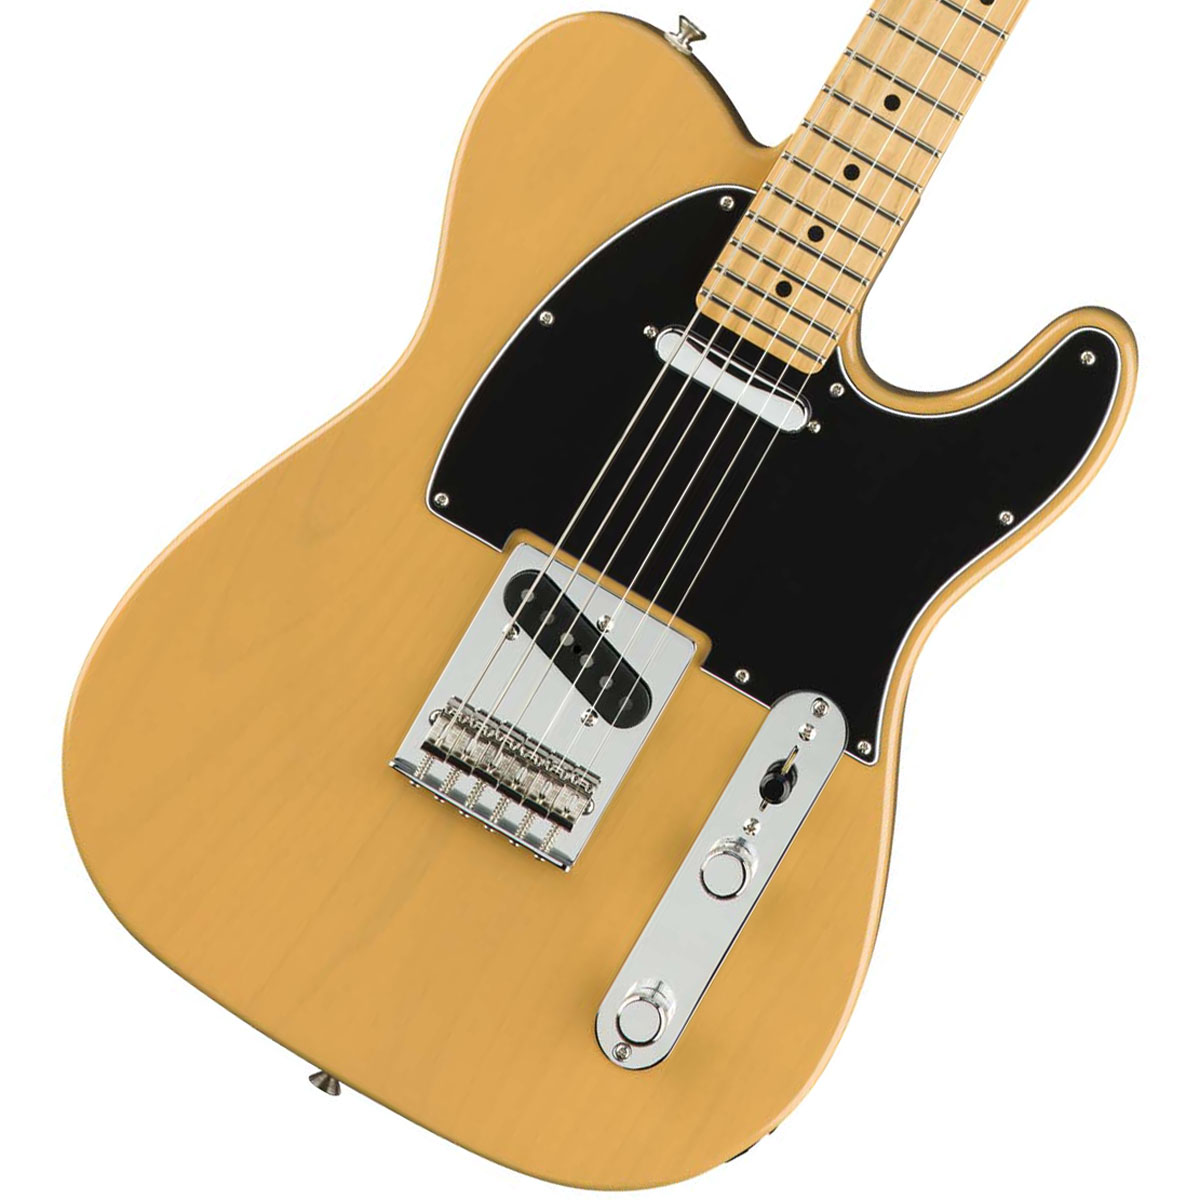 Fender / Player Series Telecaster Butterscotch Blonde Maple